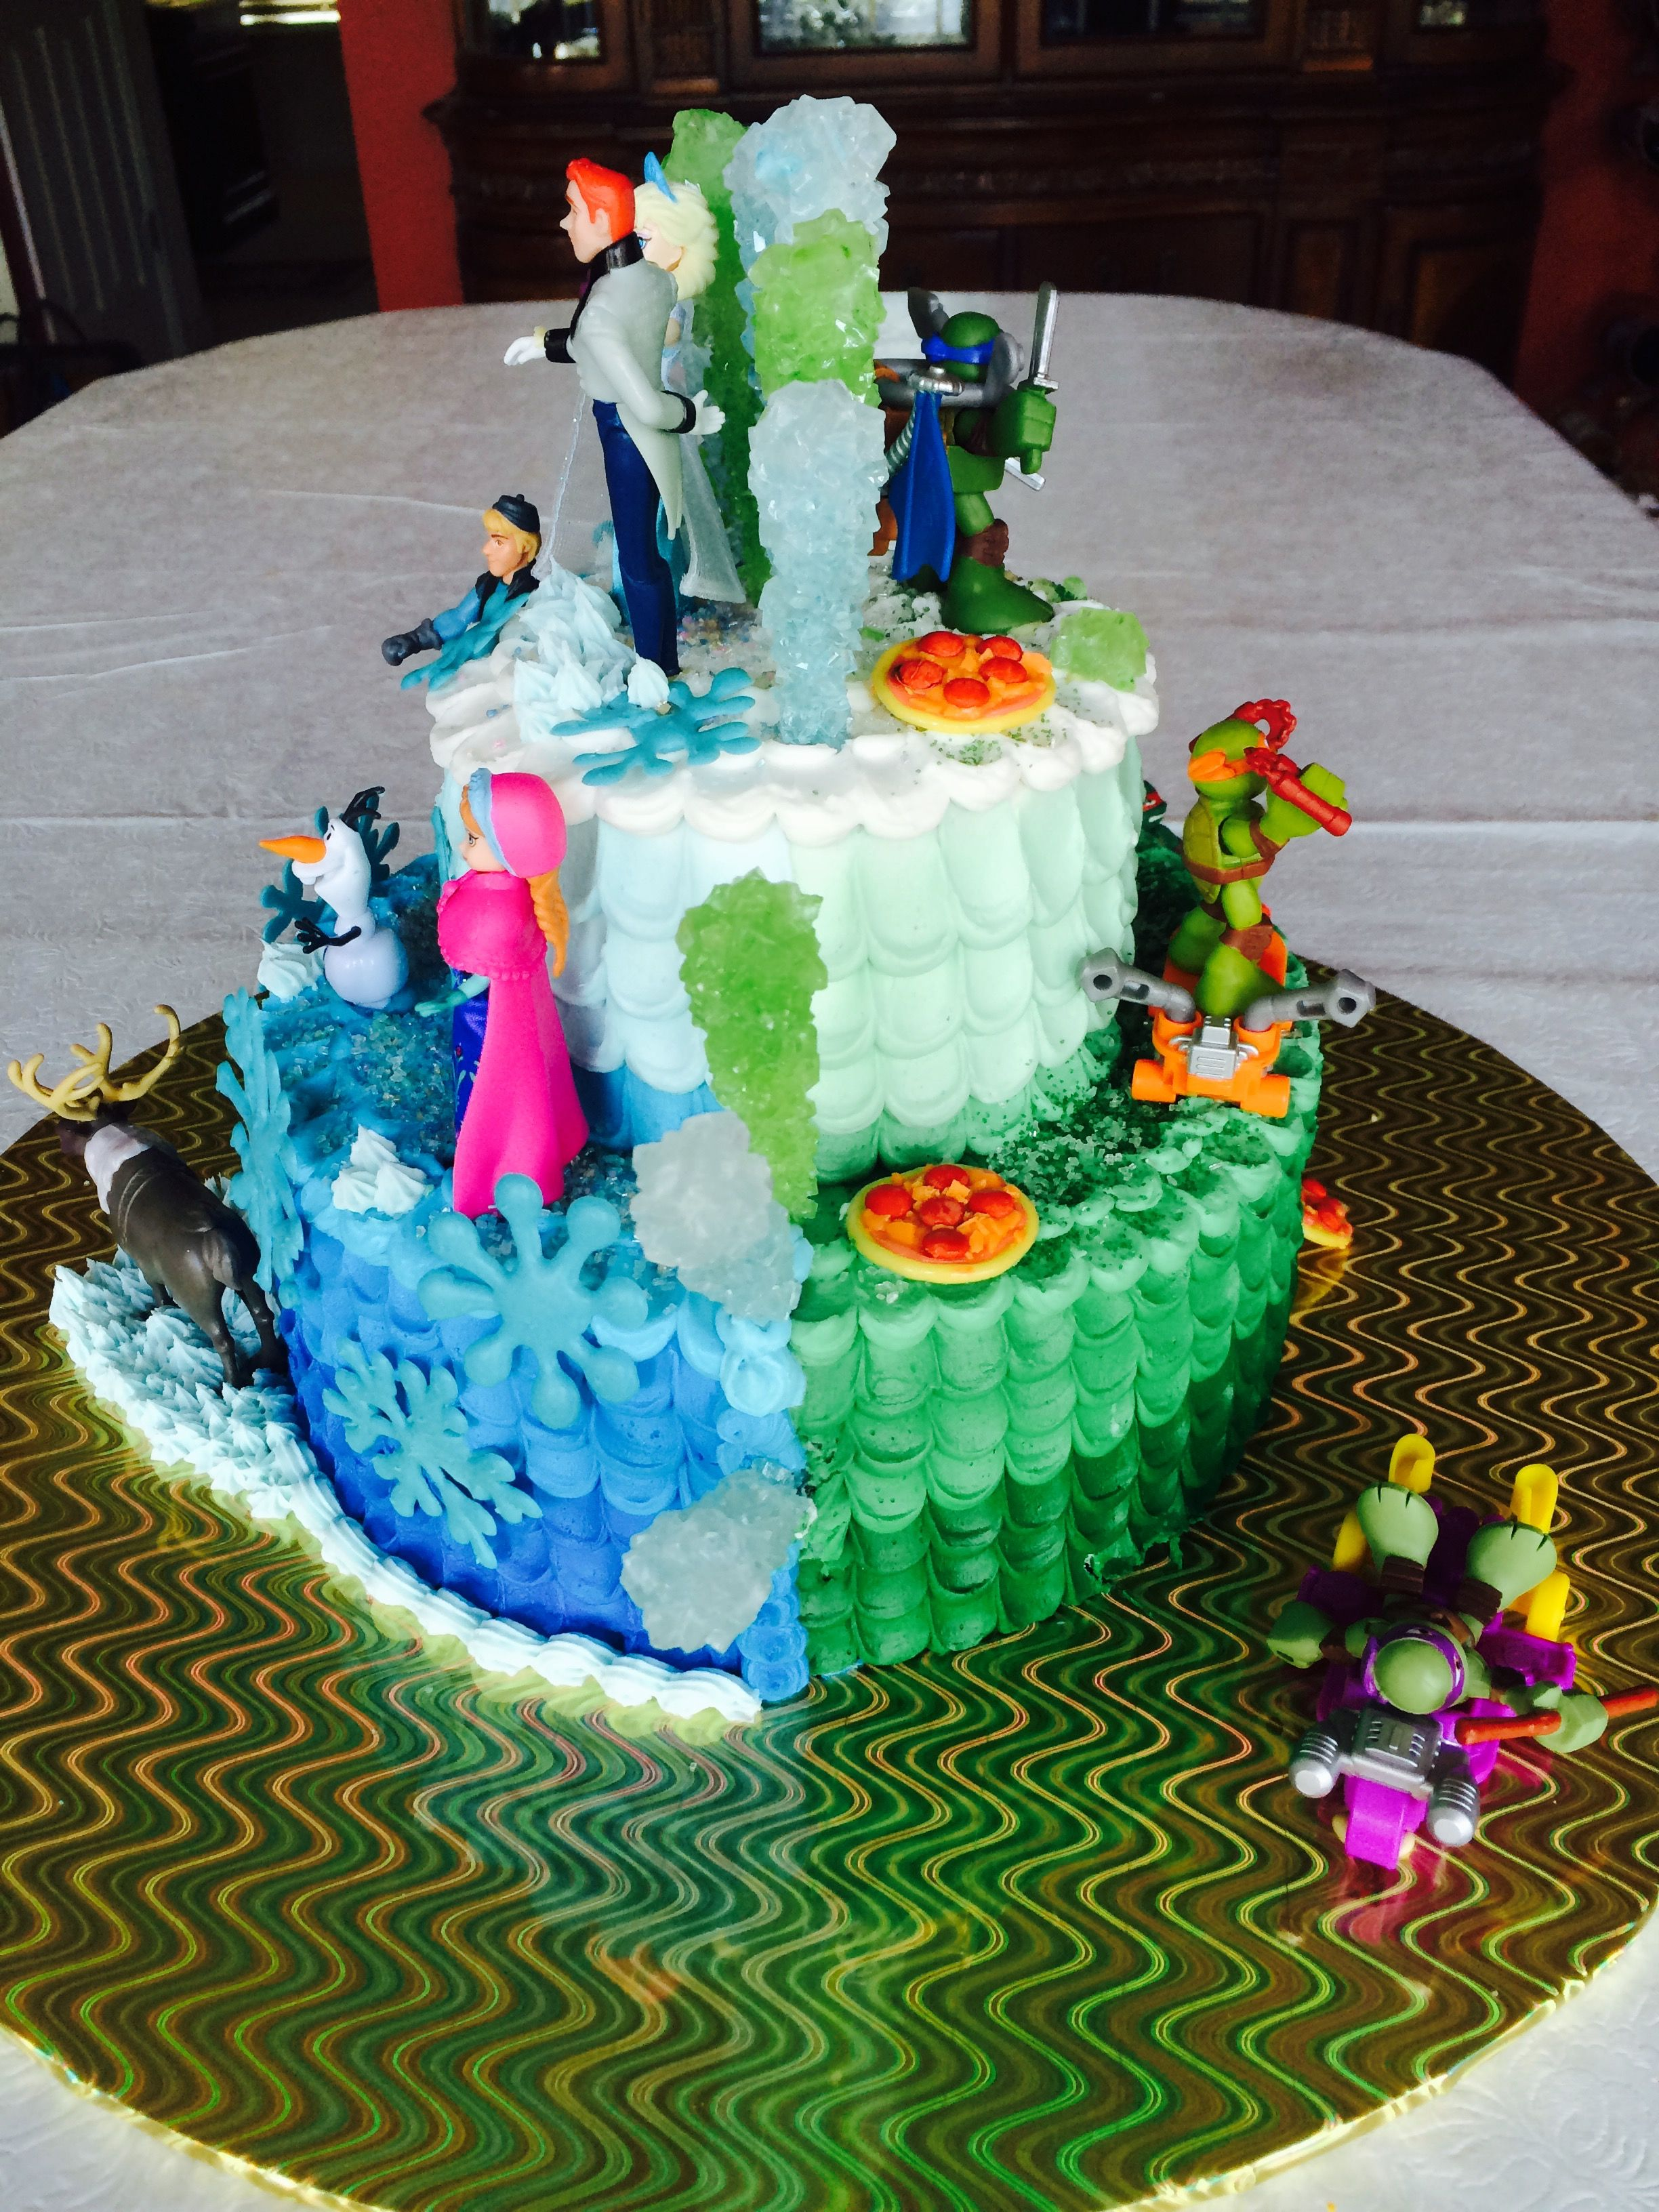 Twins wanted there own theme cake Frozen and Ninja Turtles